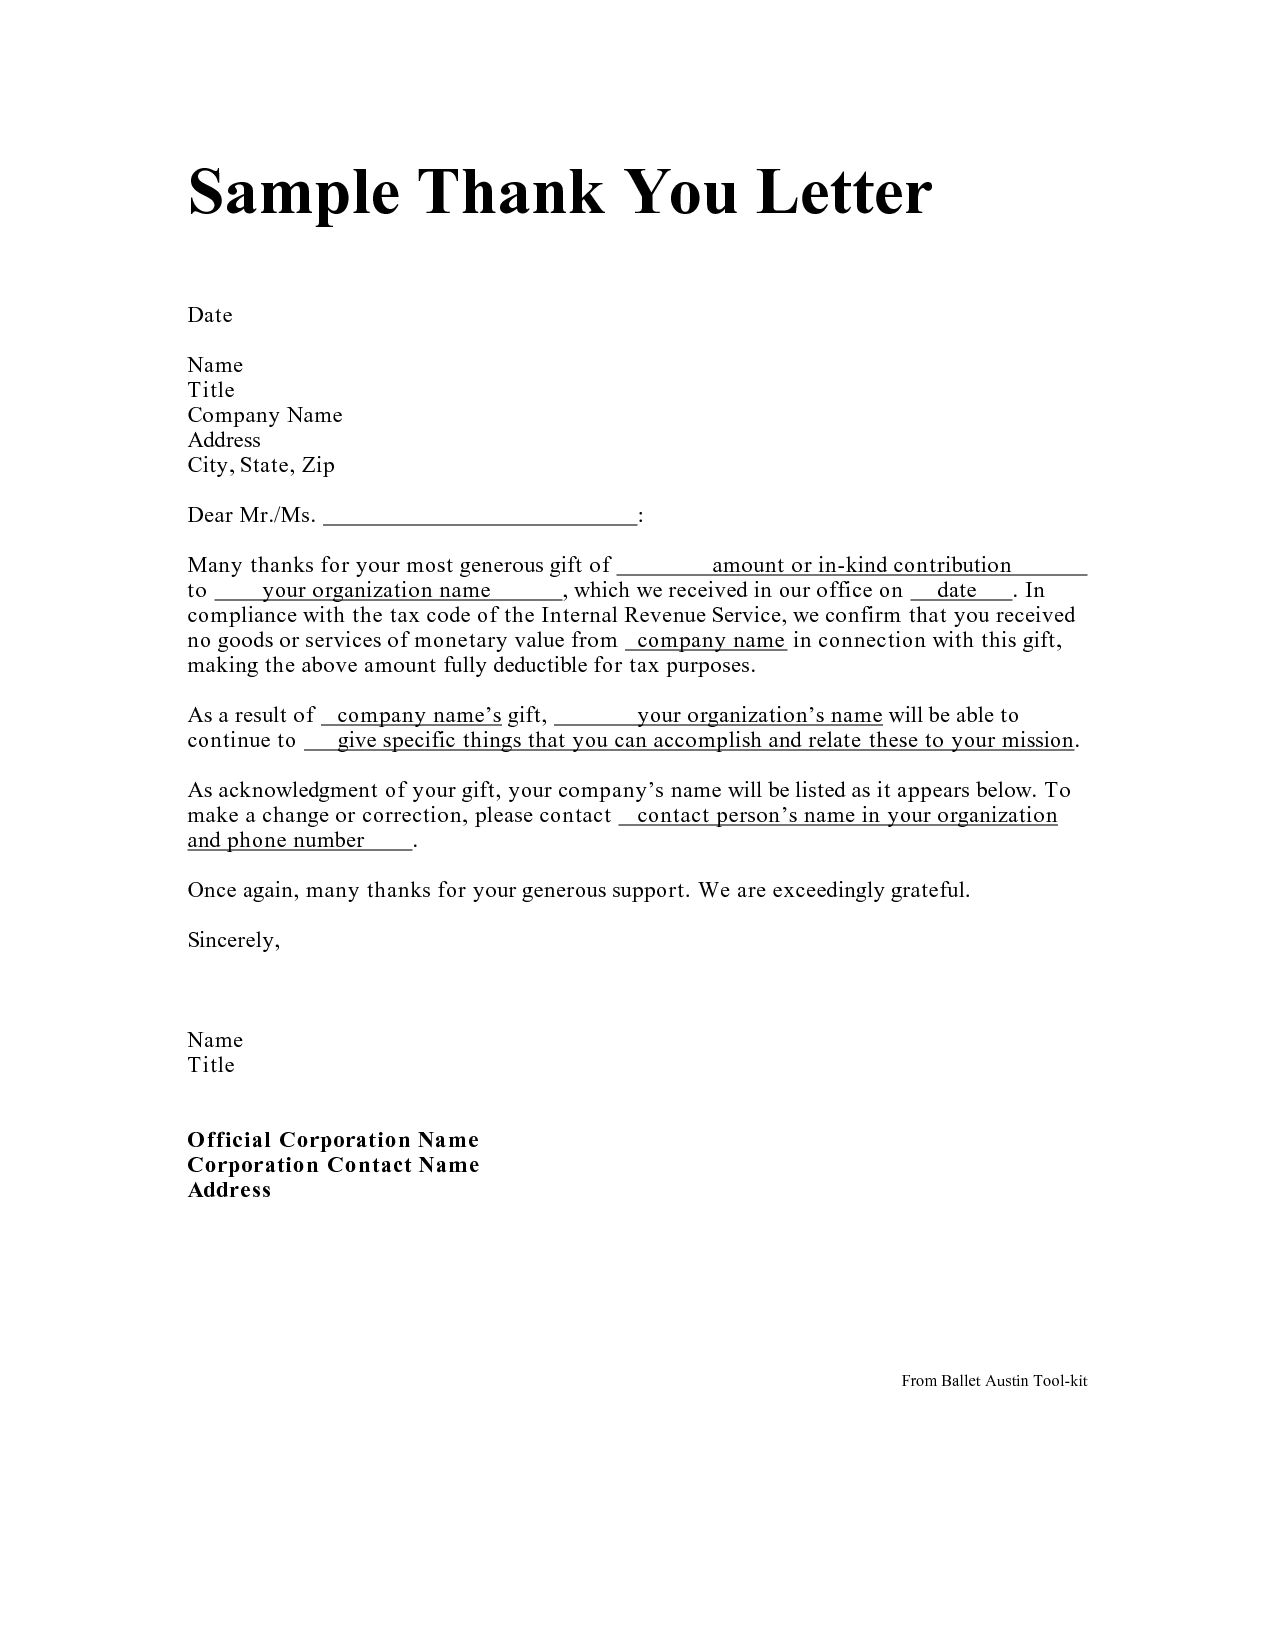 personal thank you letter sample apology letter 2017 you letter 2017 personal